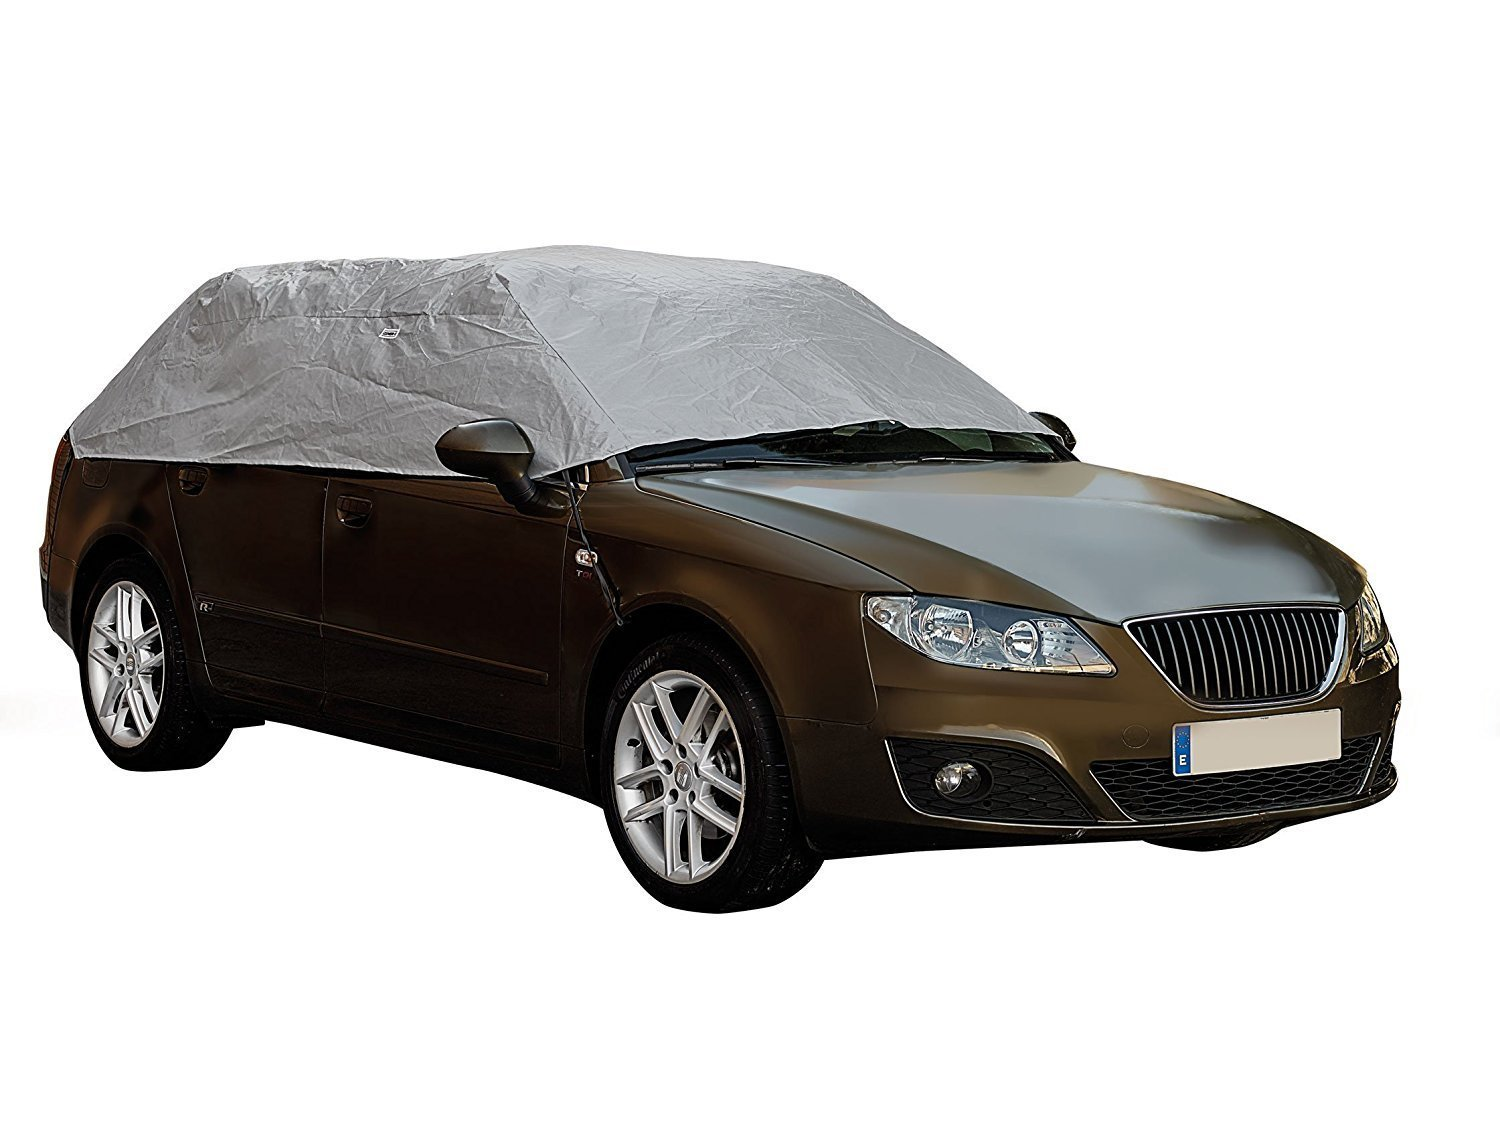 Sumex Waterproof & Breathable Weather & Frost Protection Car Half Top Cover (Extra Large - (317 x 157 x 51cm)) Sumex Cover+